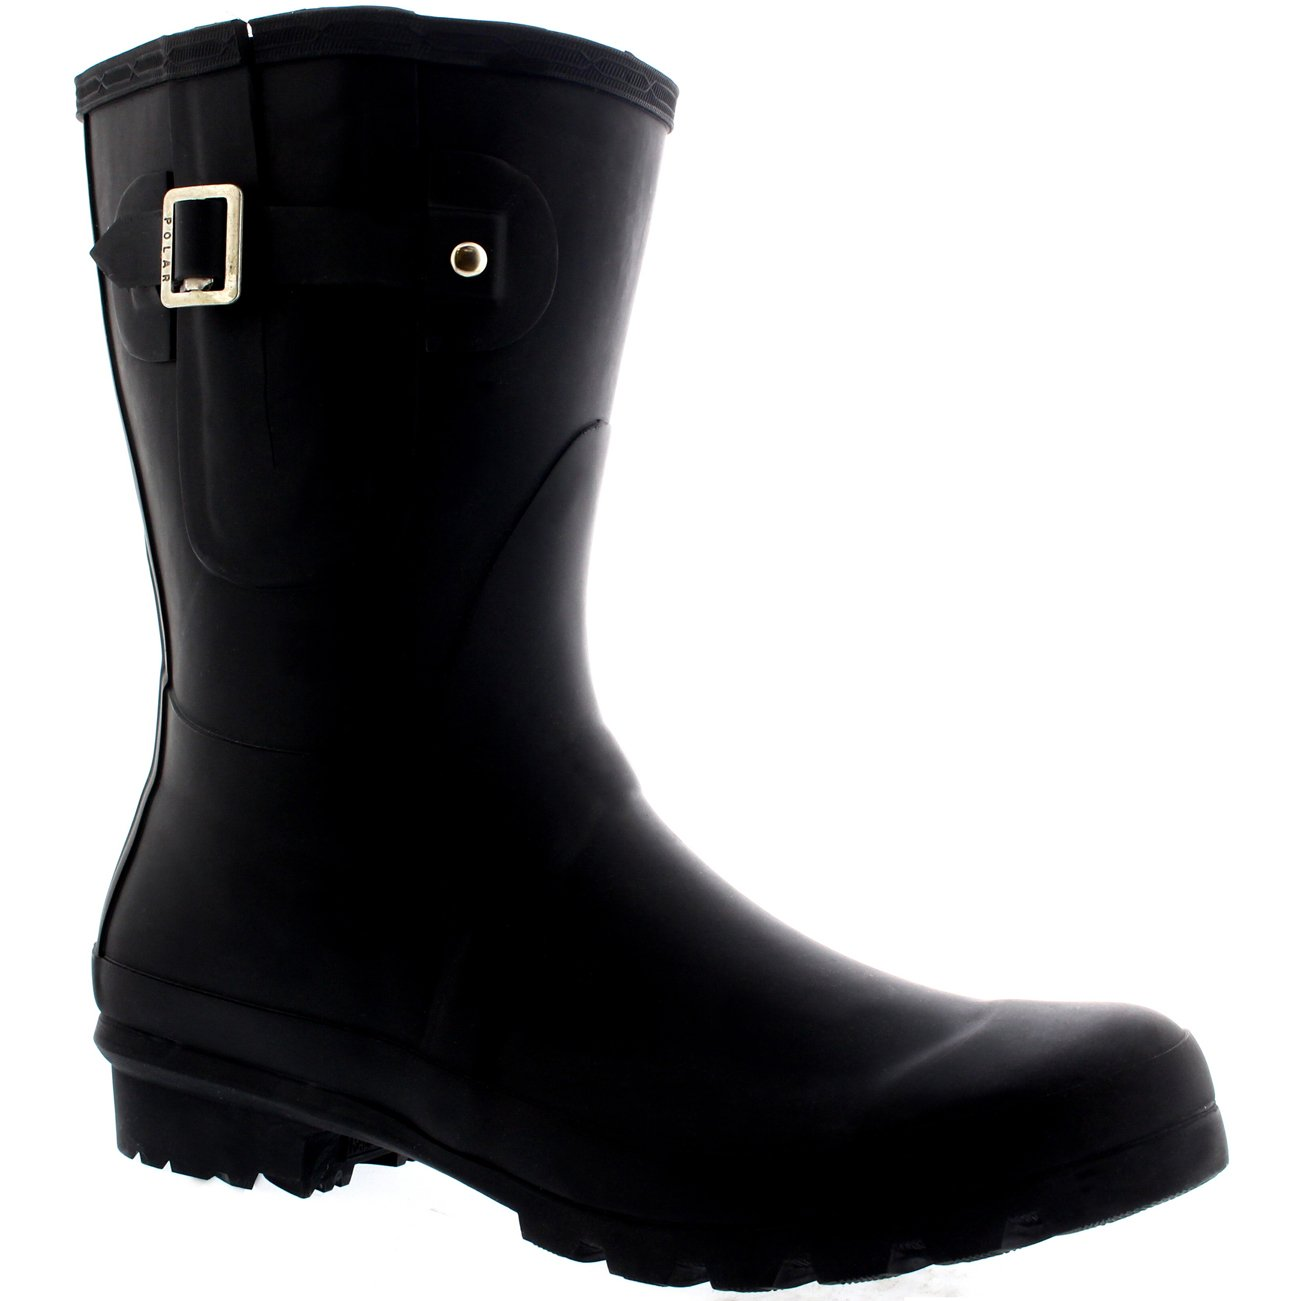 Polar Mens Adjustable Side Rubber Waterproof Rain Wellingtons Boots - Black - US13/EU46 - BL0232 by Polar Products (Image #3)